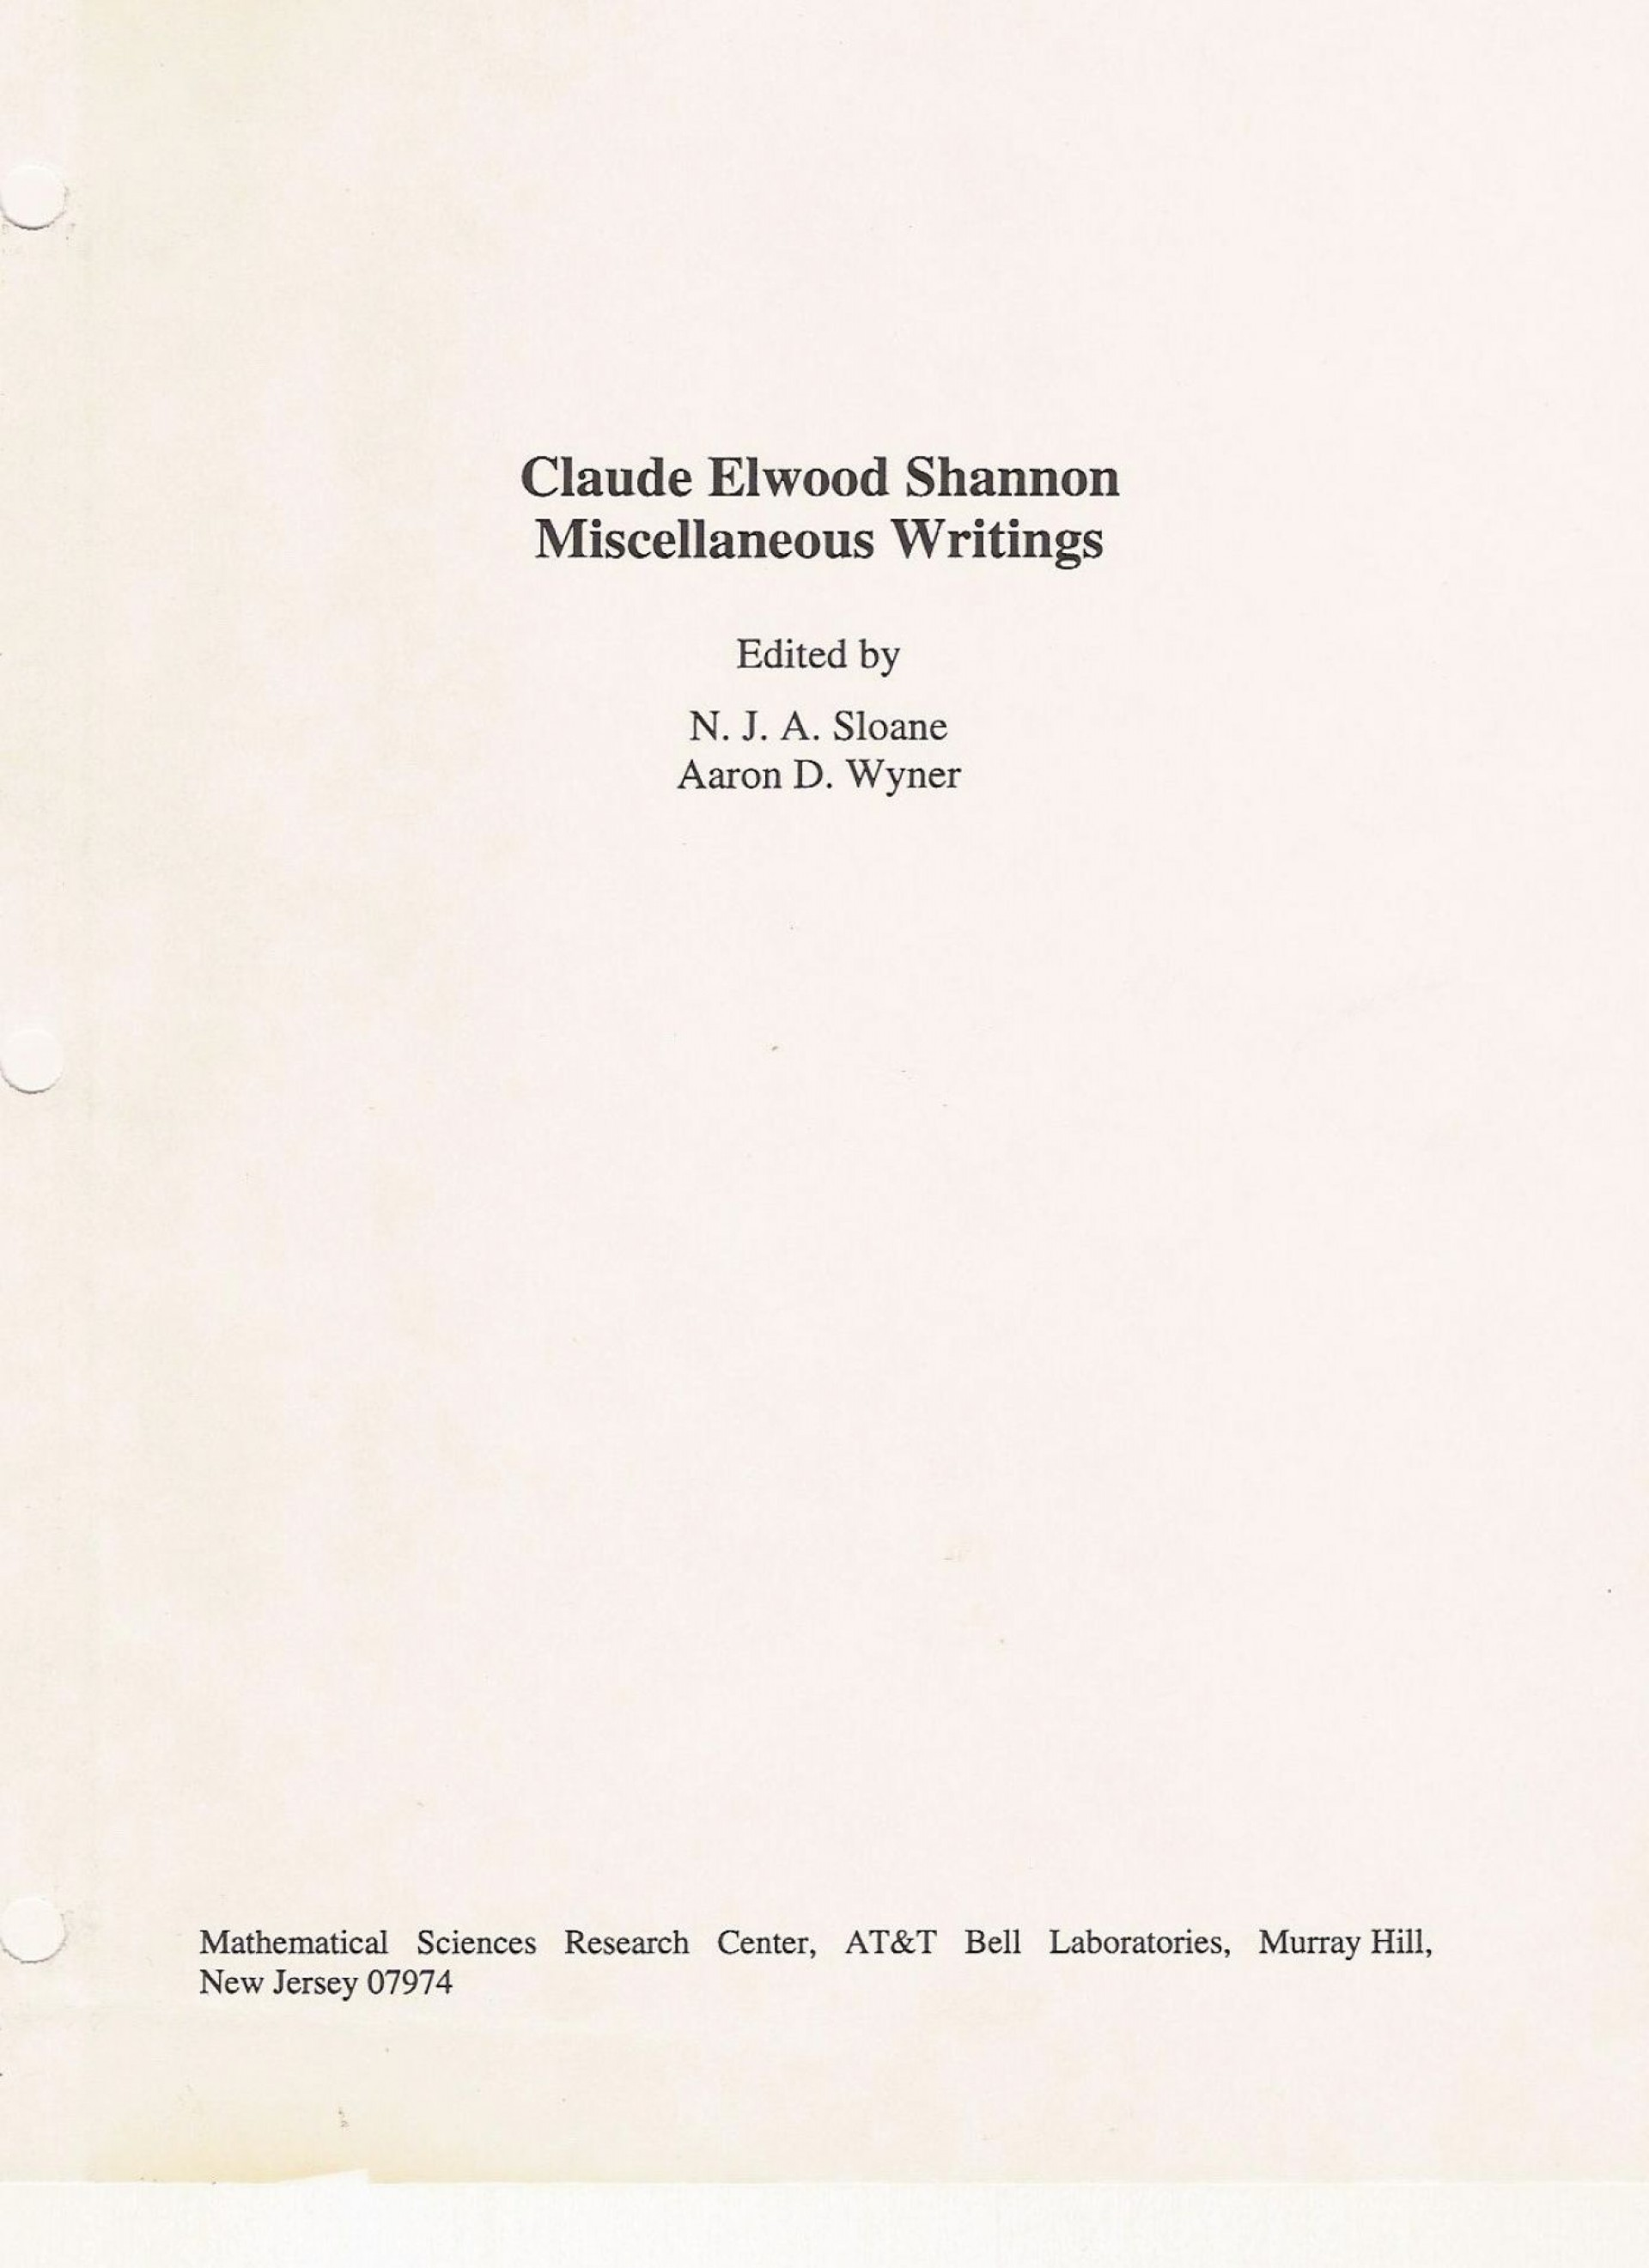 008 Cover Page For Research Paper Format 12118 Magnificent Title Chicago Style Mla 1920